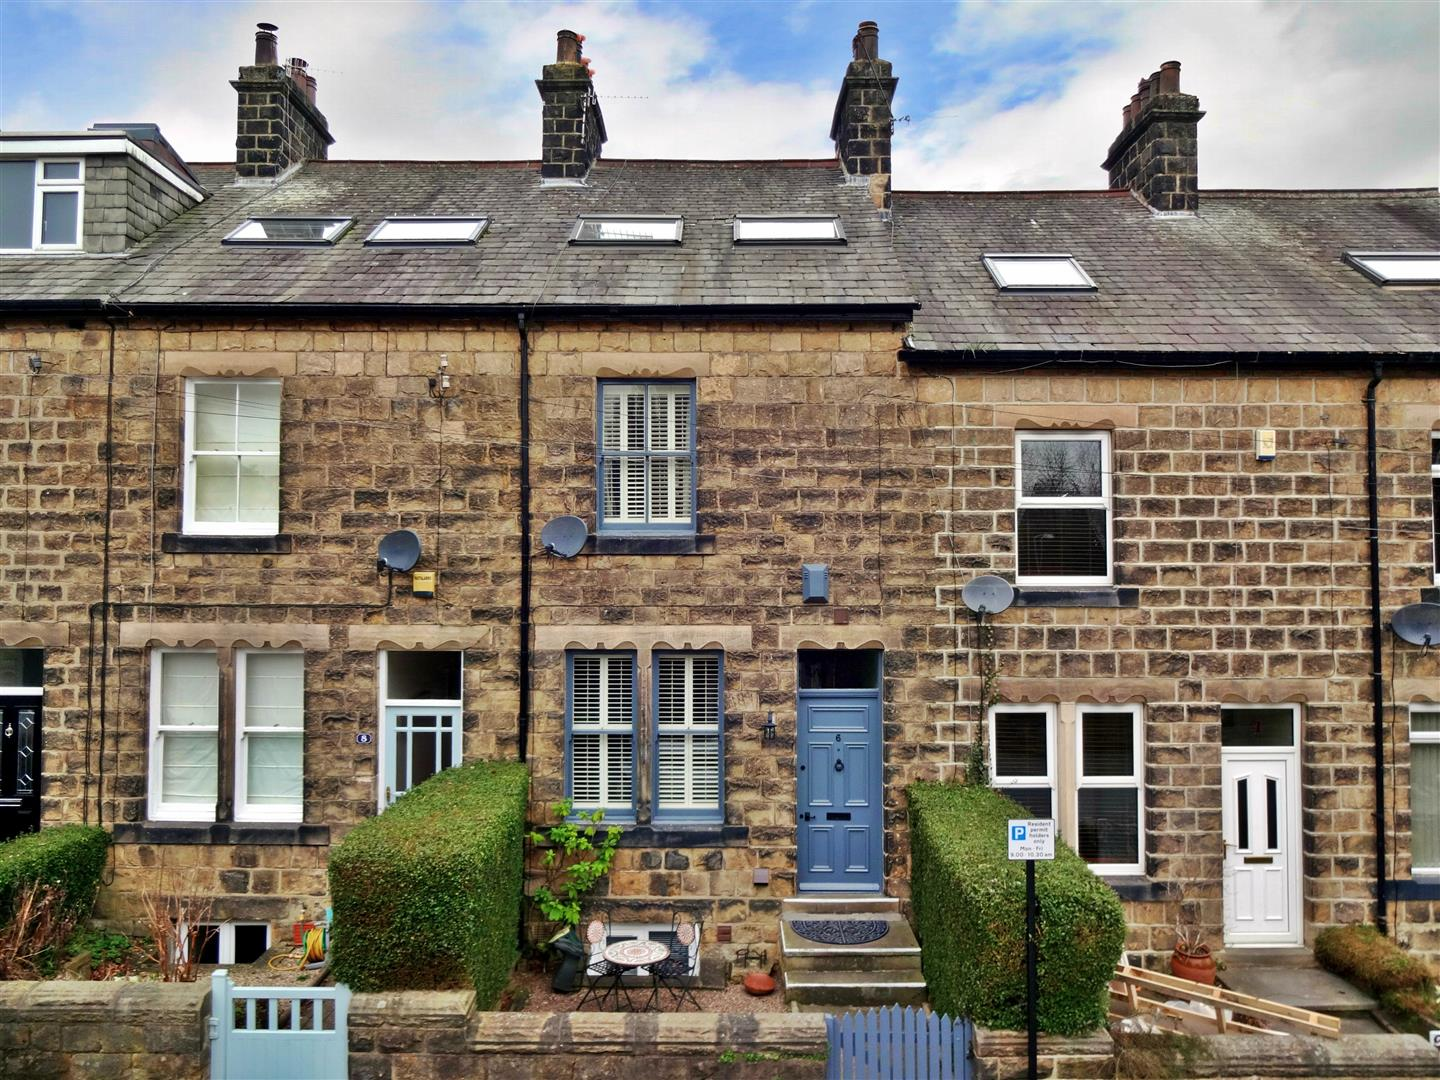 Farnley Road, Menston, LS29 6JN